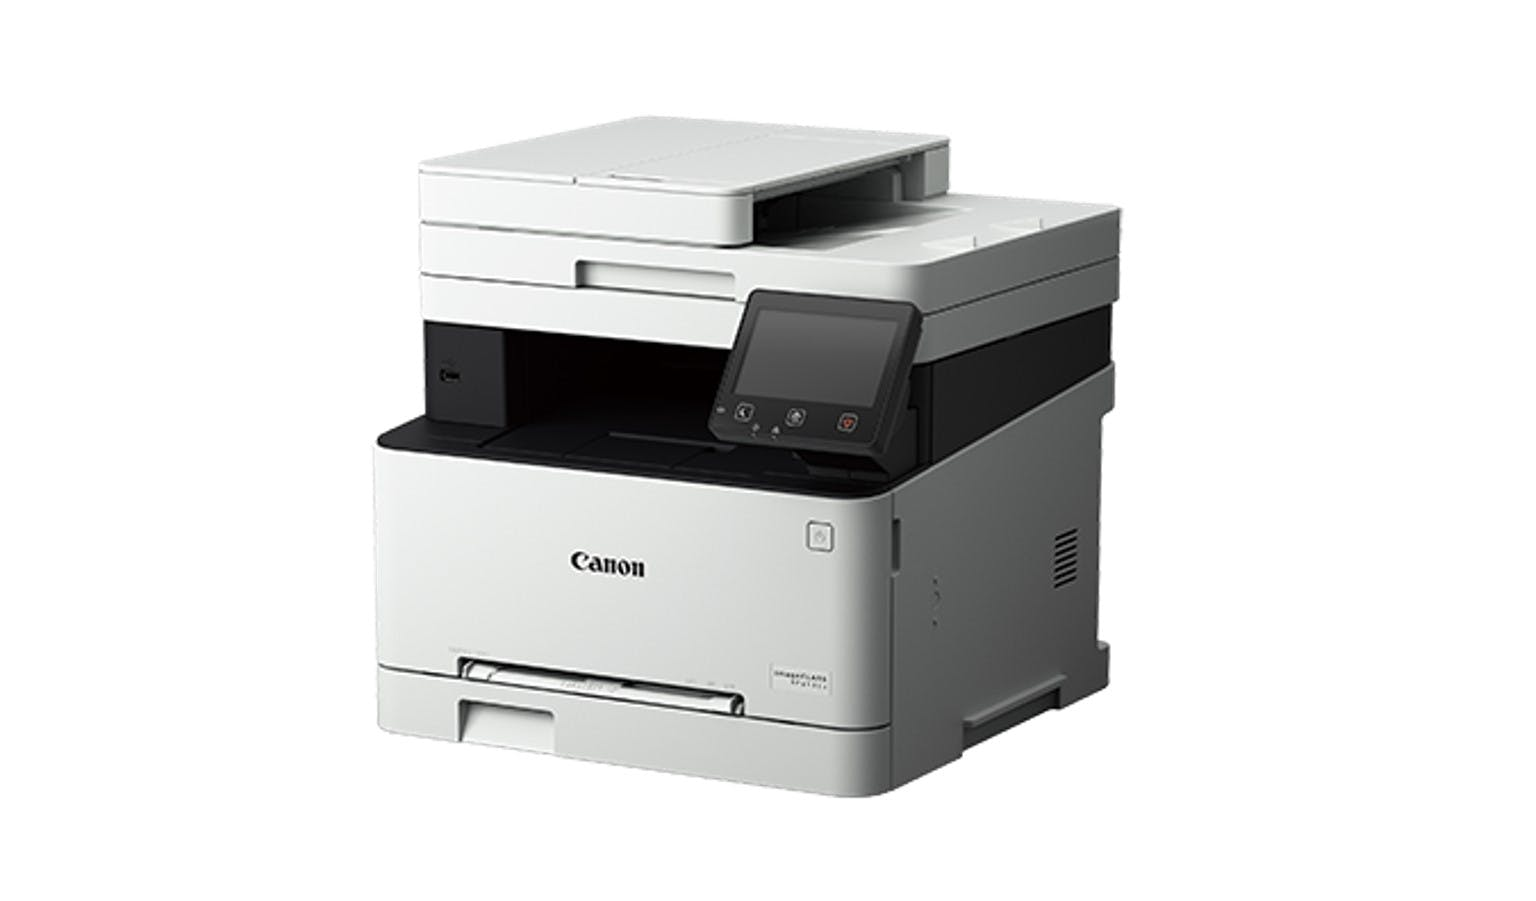 Canon MF645CX All-In-One Colour Laser Printer - White